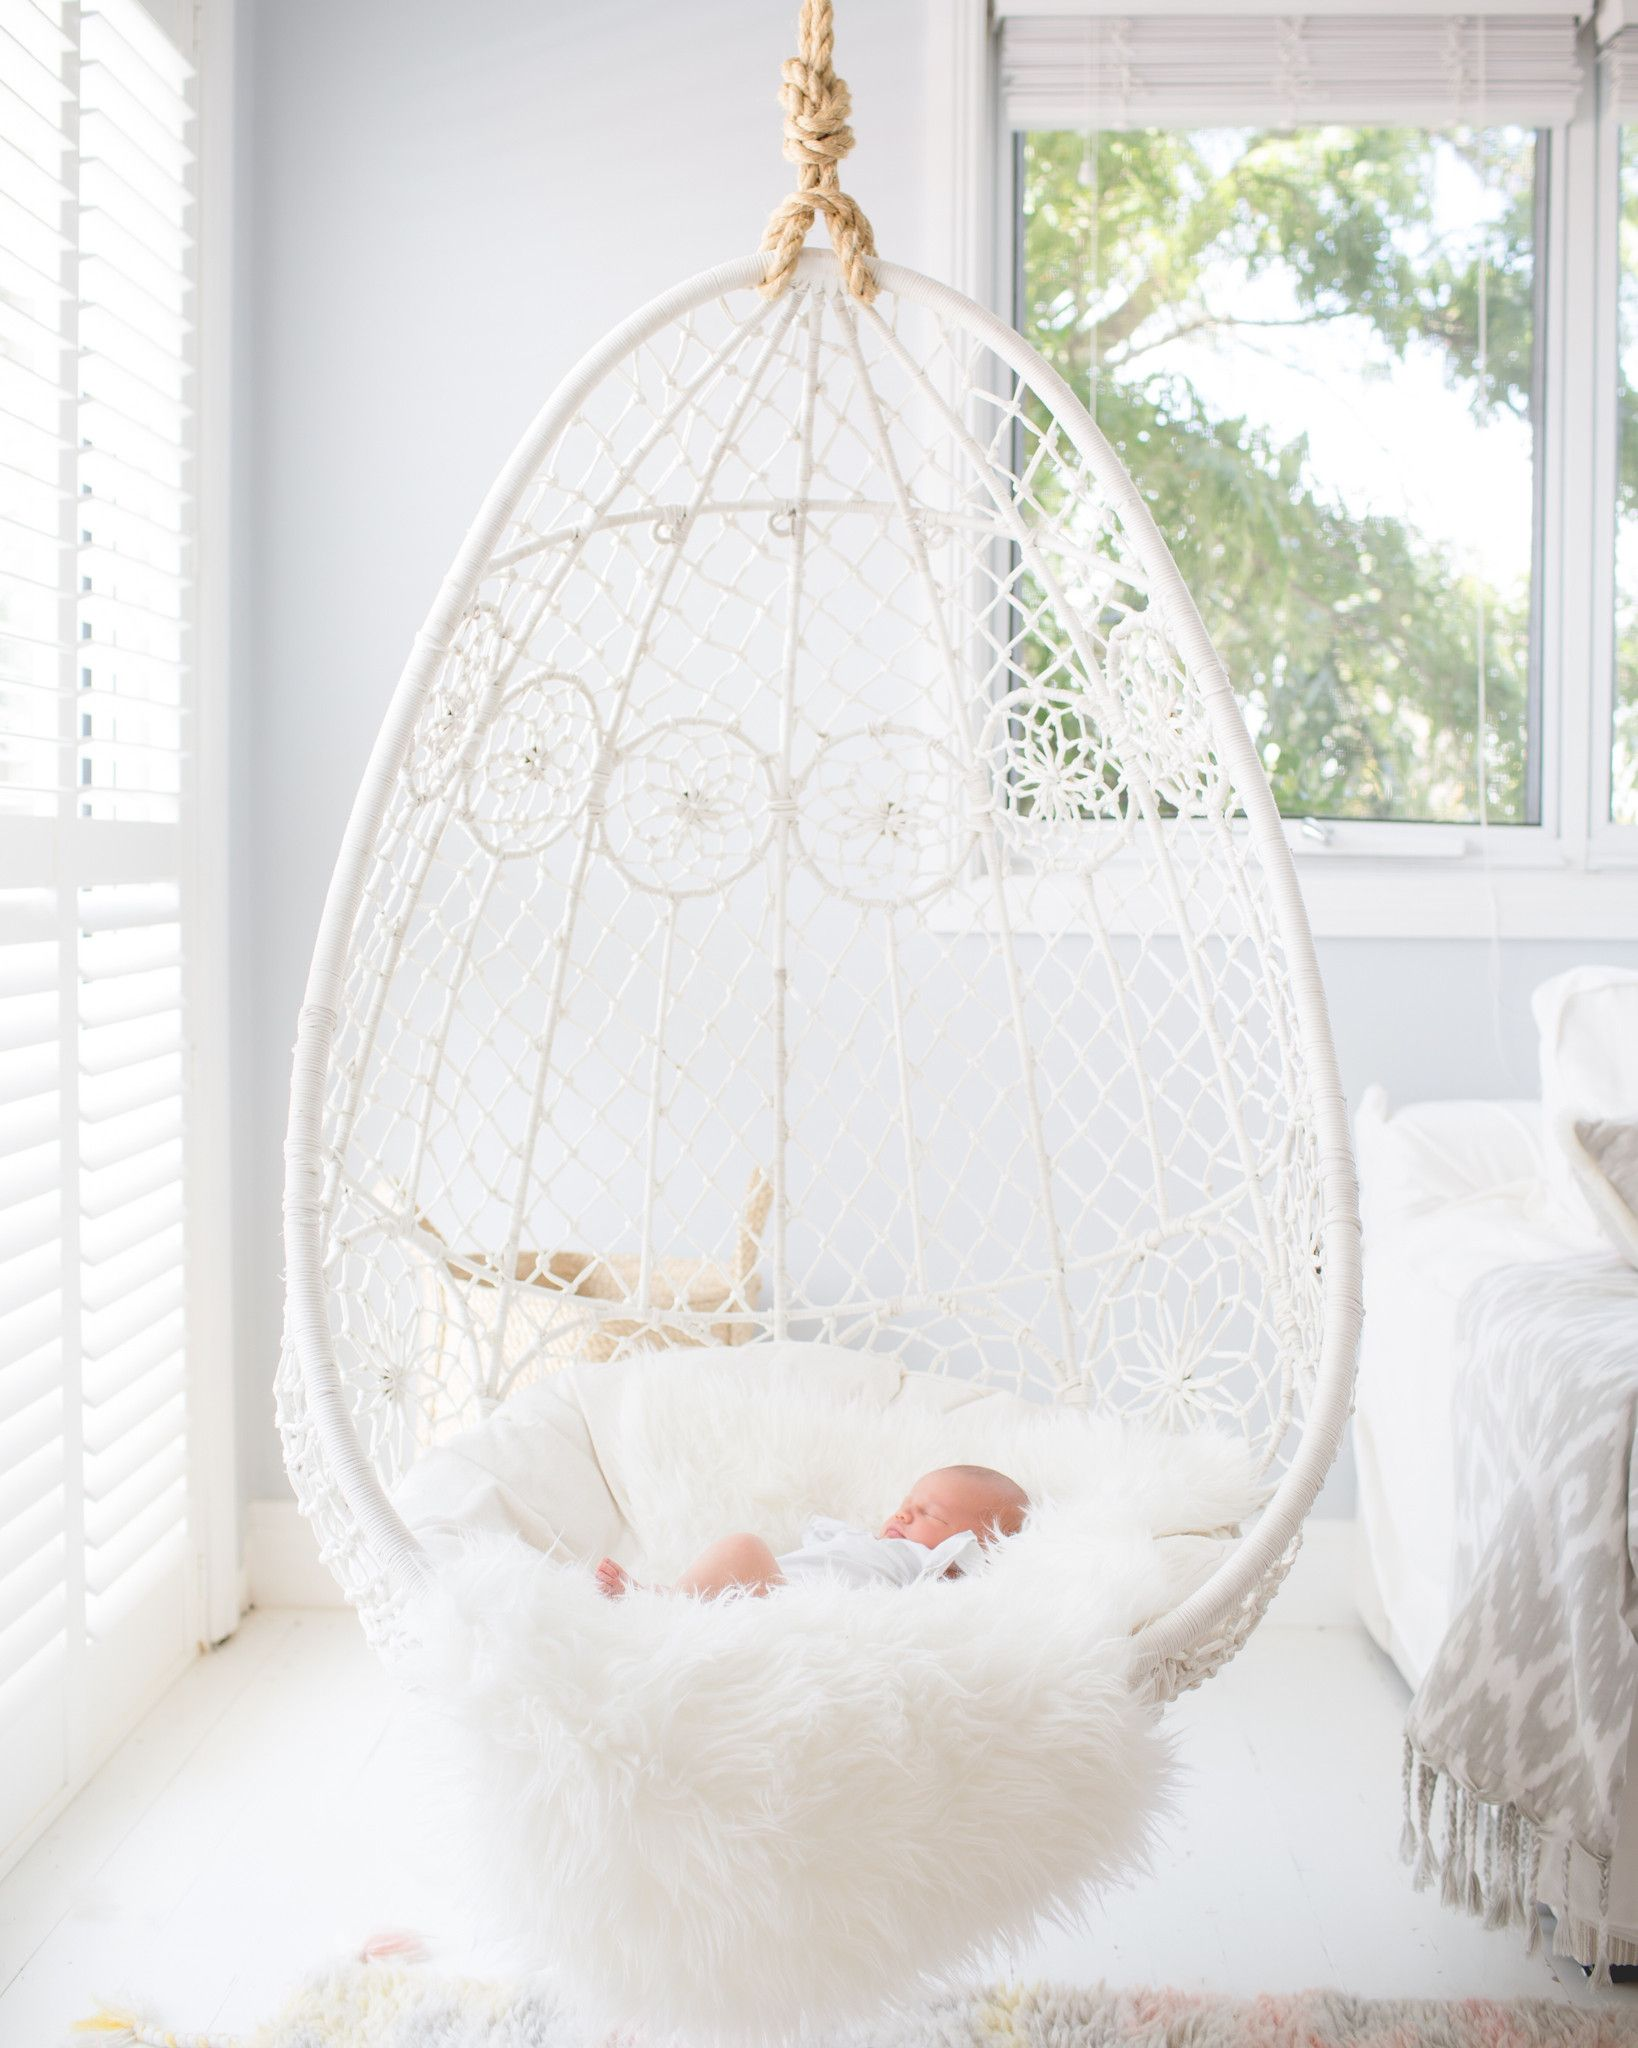 Wohnungsideen Beautiful Hanging Chair | Wohnungsideen | Cute Room Decor